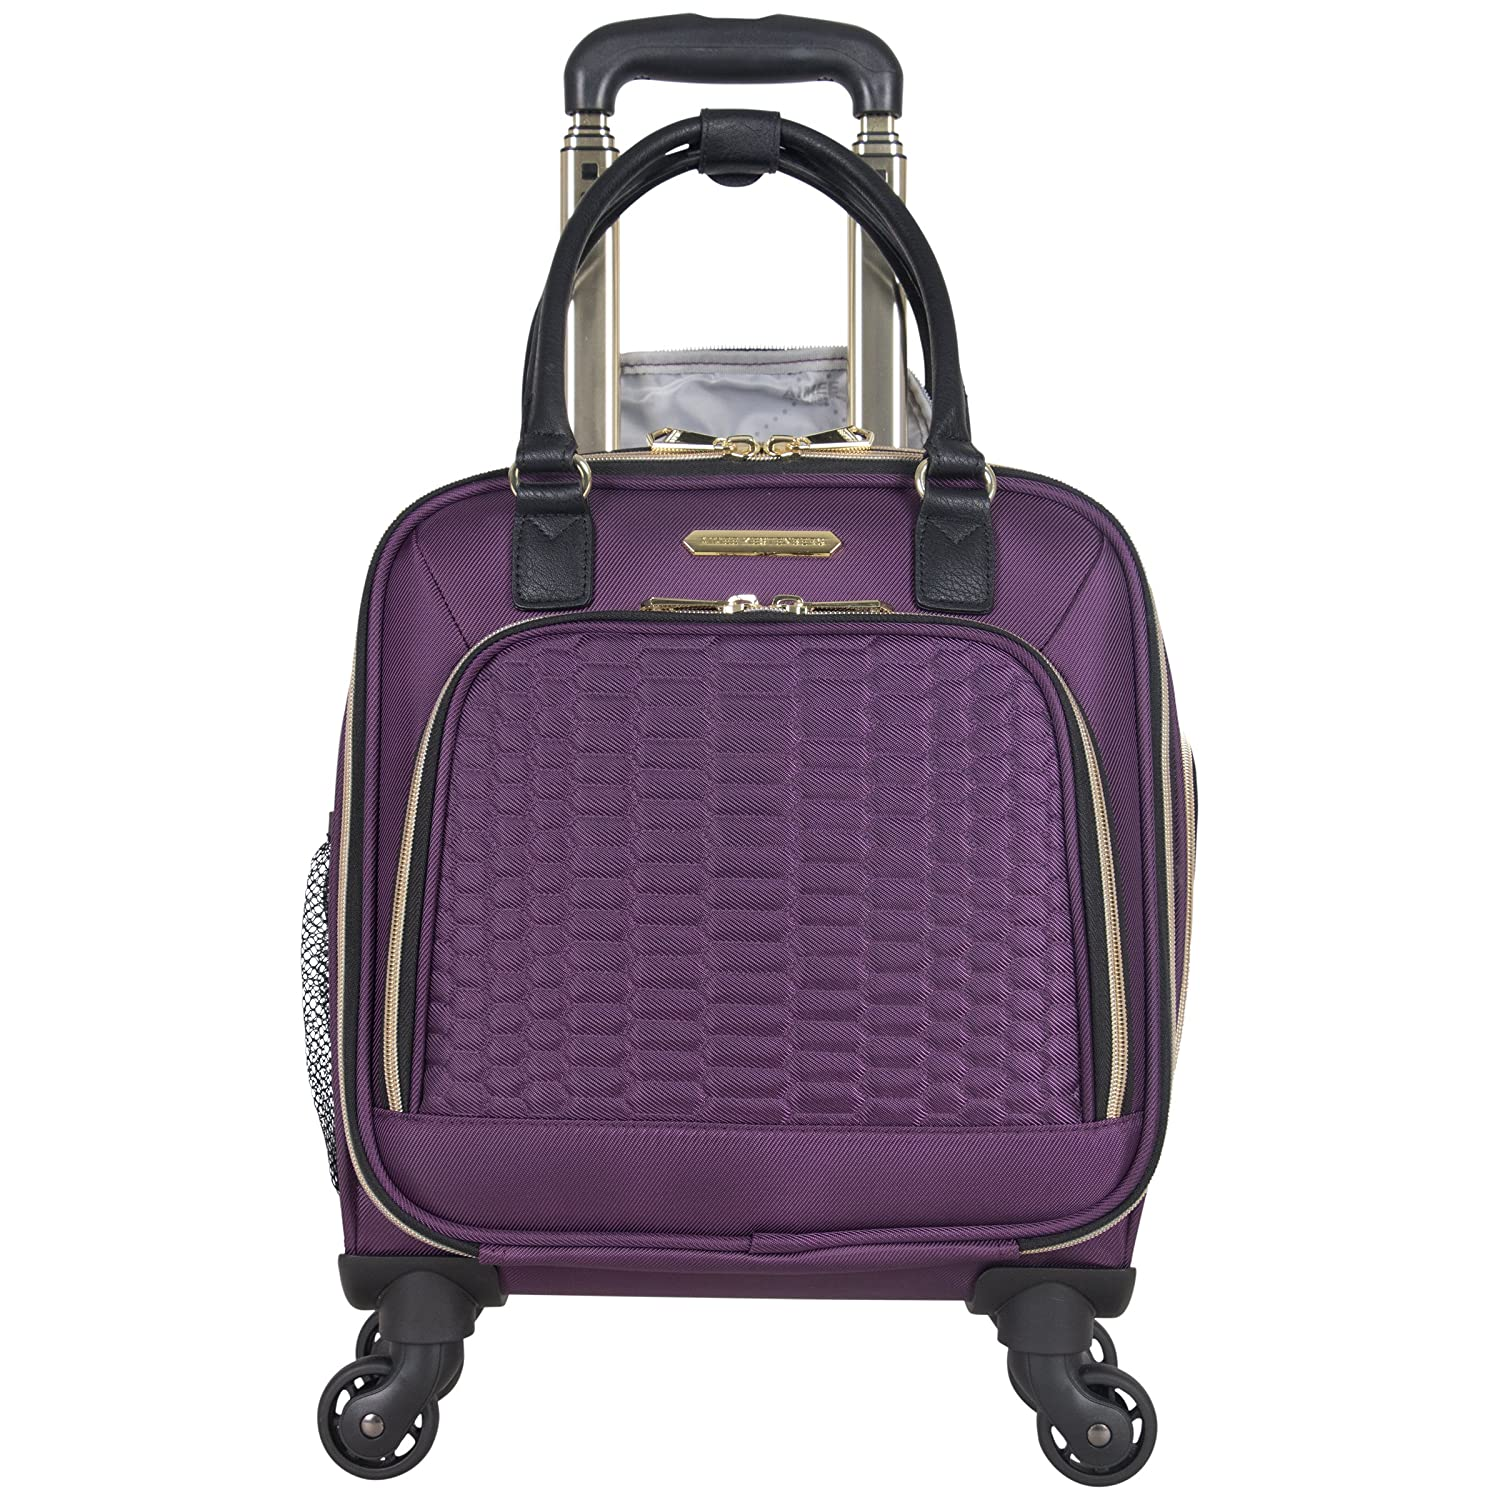 Aimee Kestenberg Polyester Twill Double Pocket Quilted Python 4-Wheel Underseater Carry-On Luggage, Plum 48279